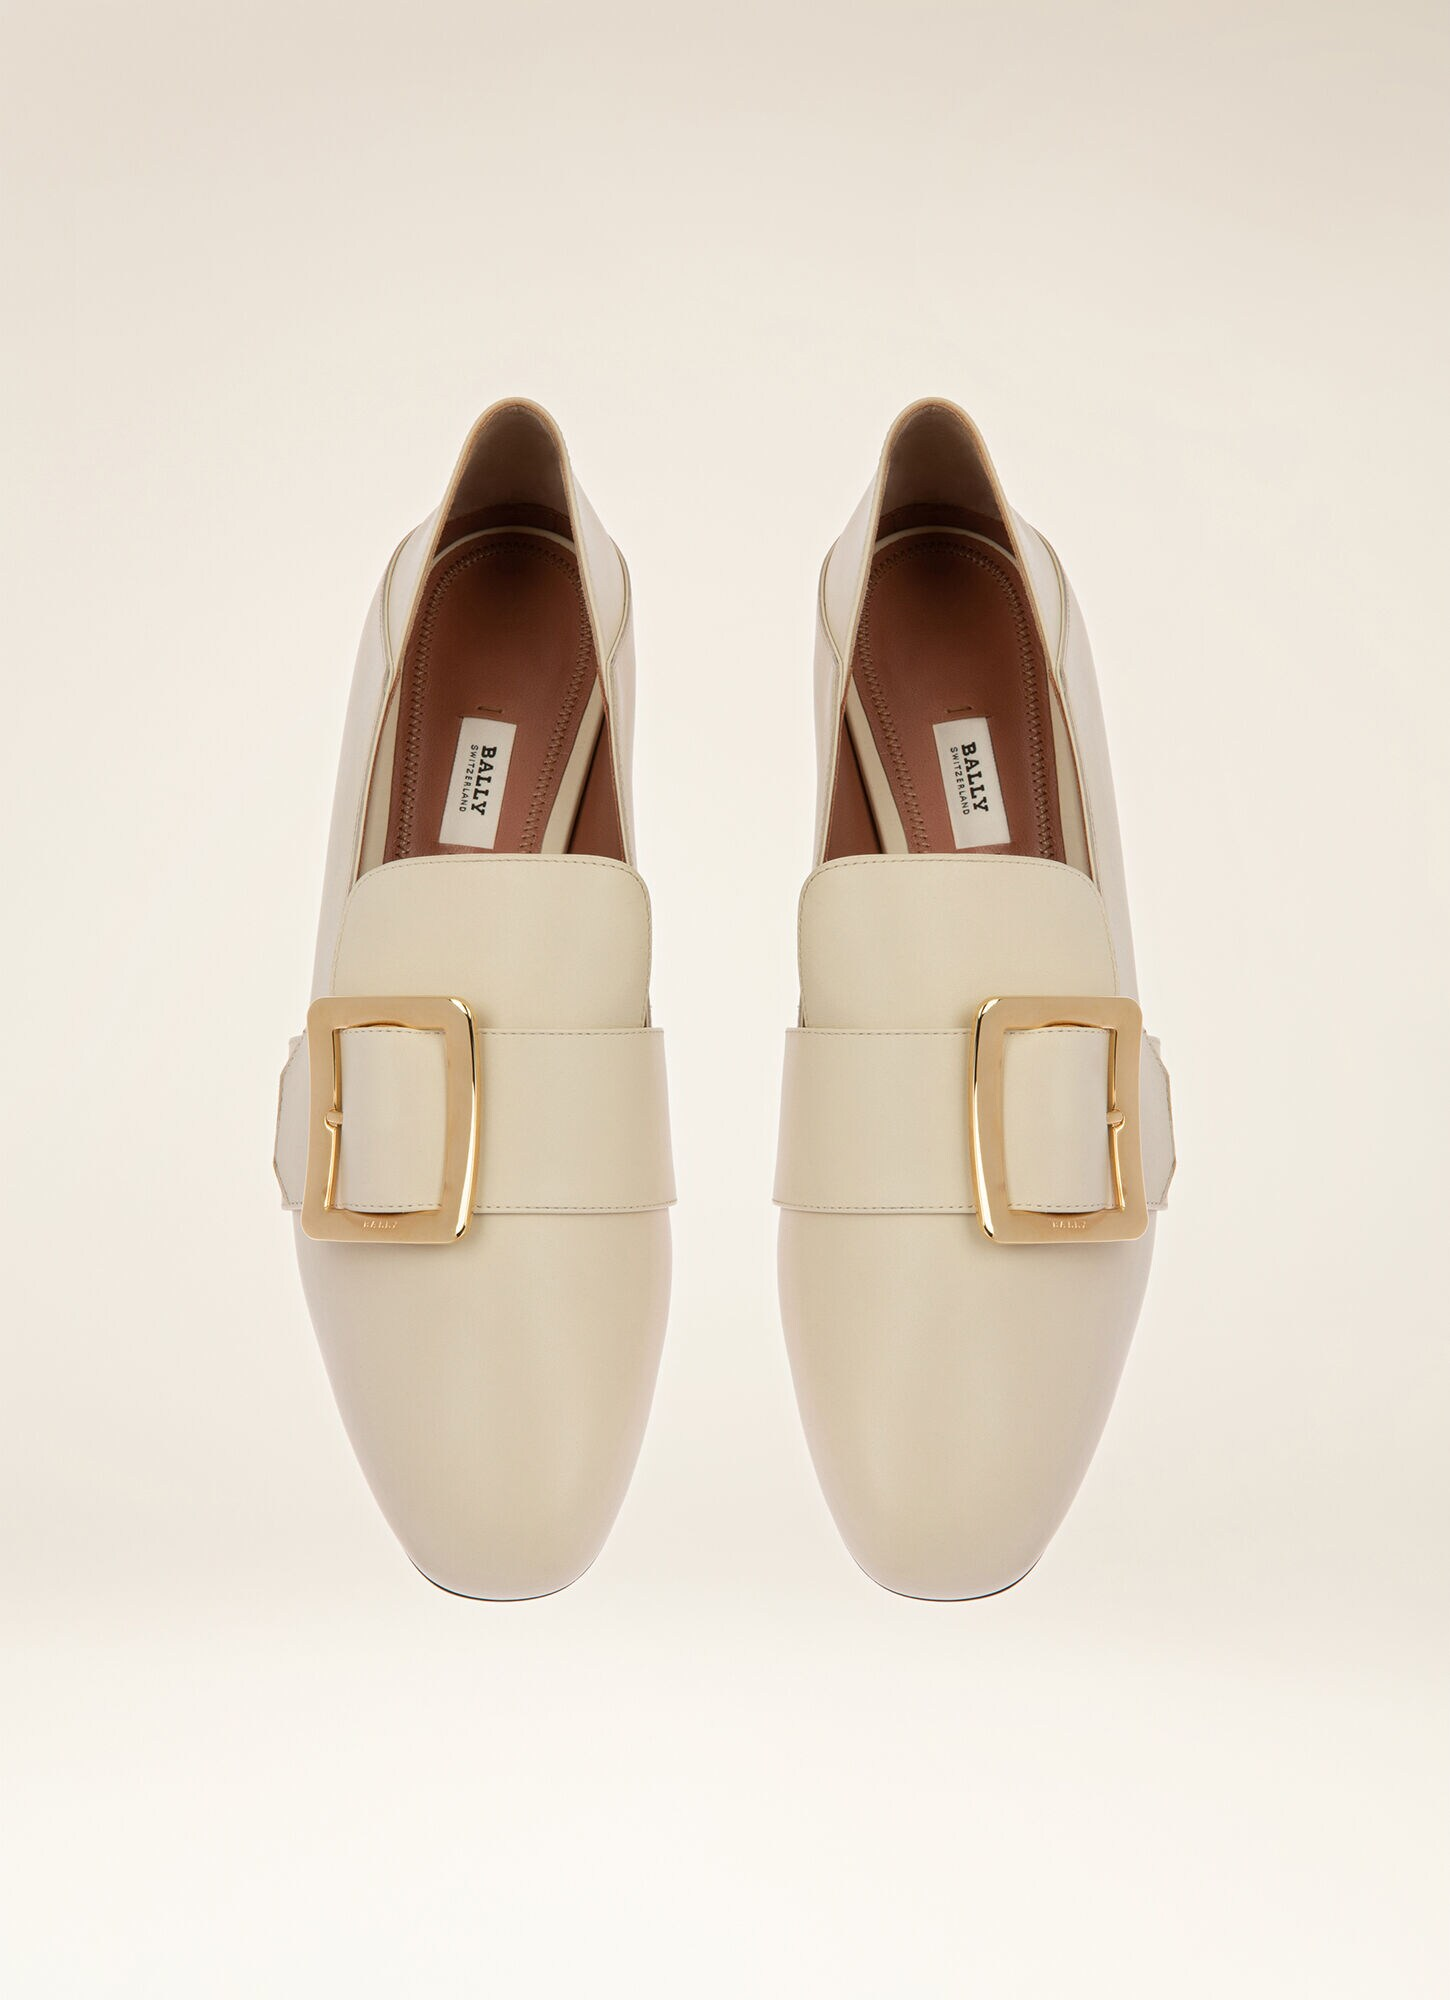 Bally soft leather loafers